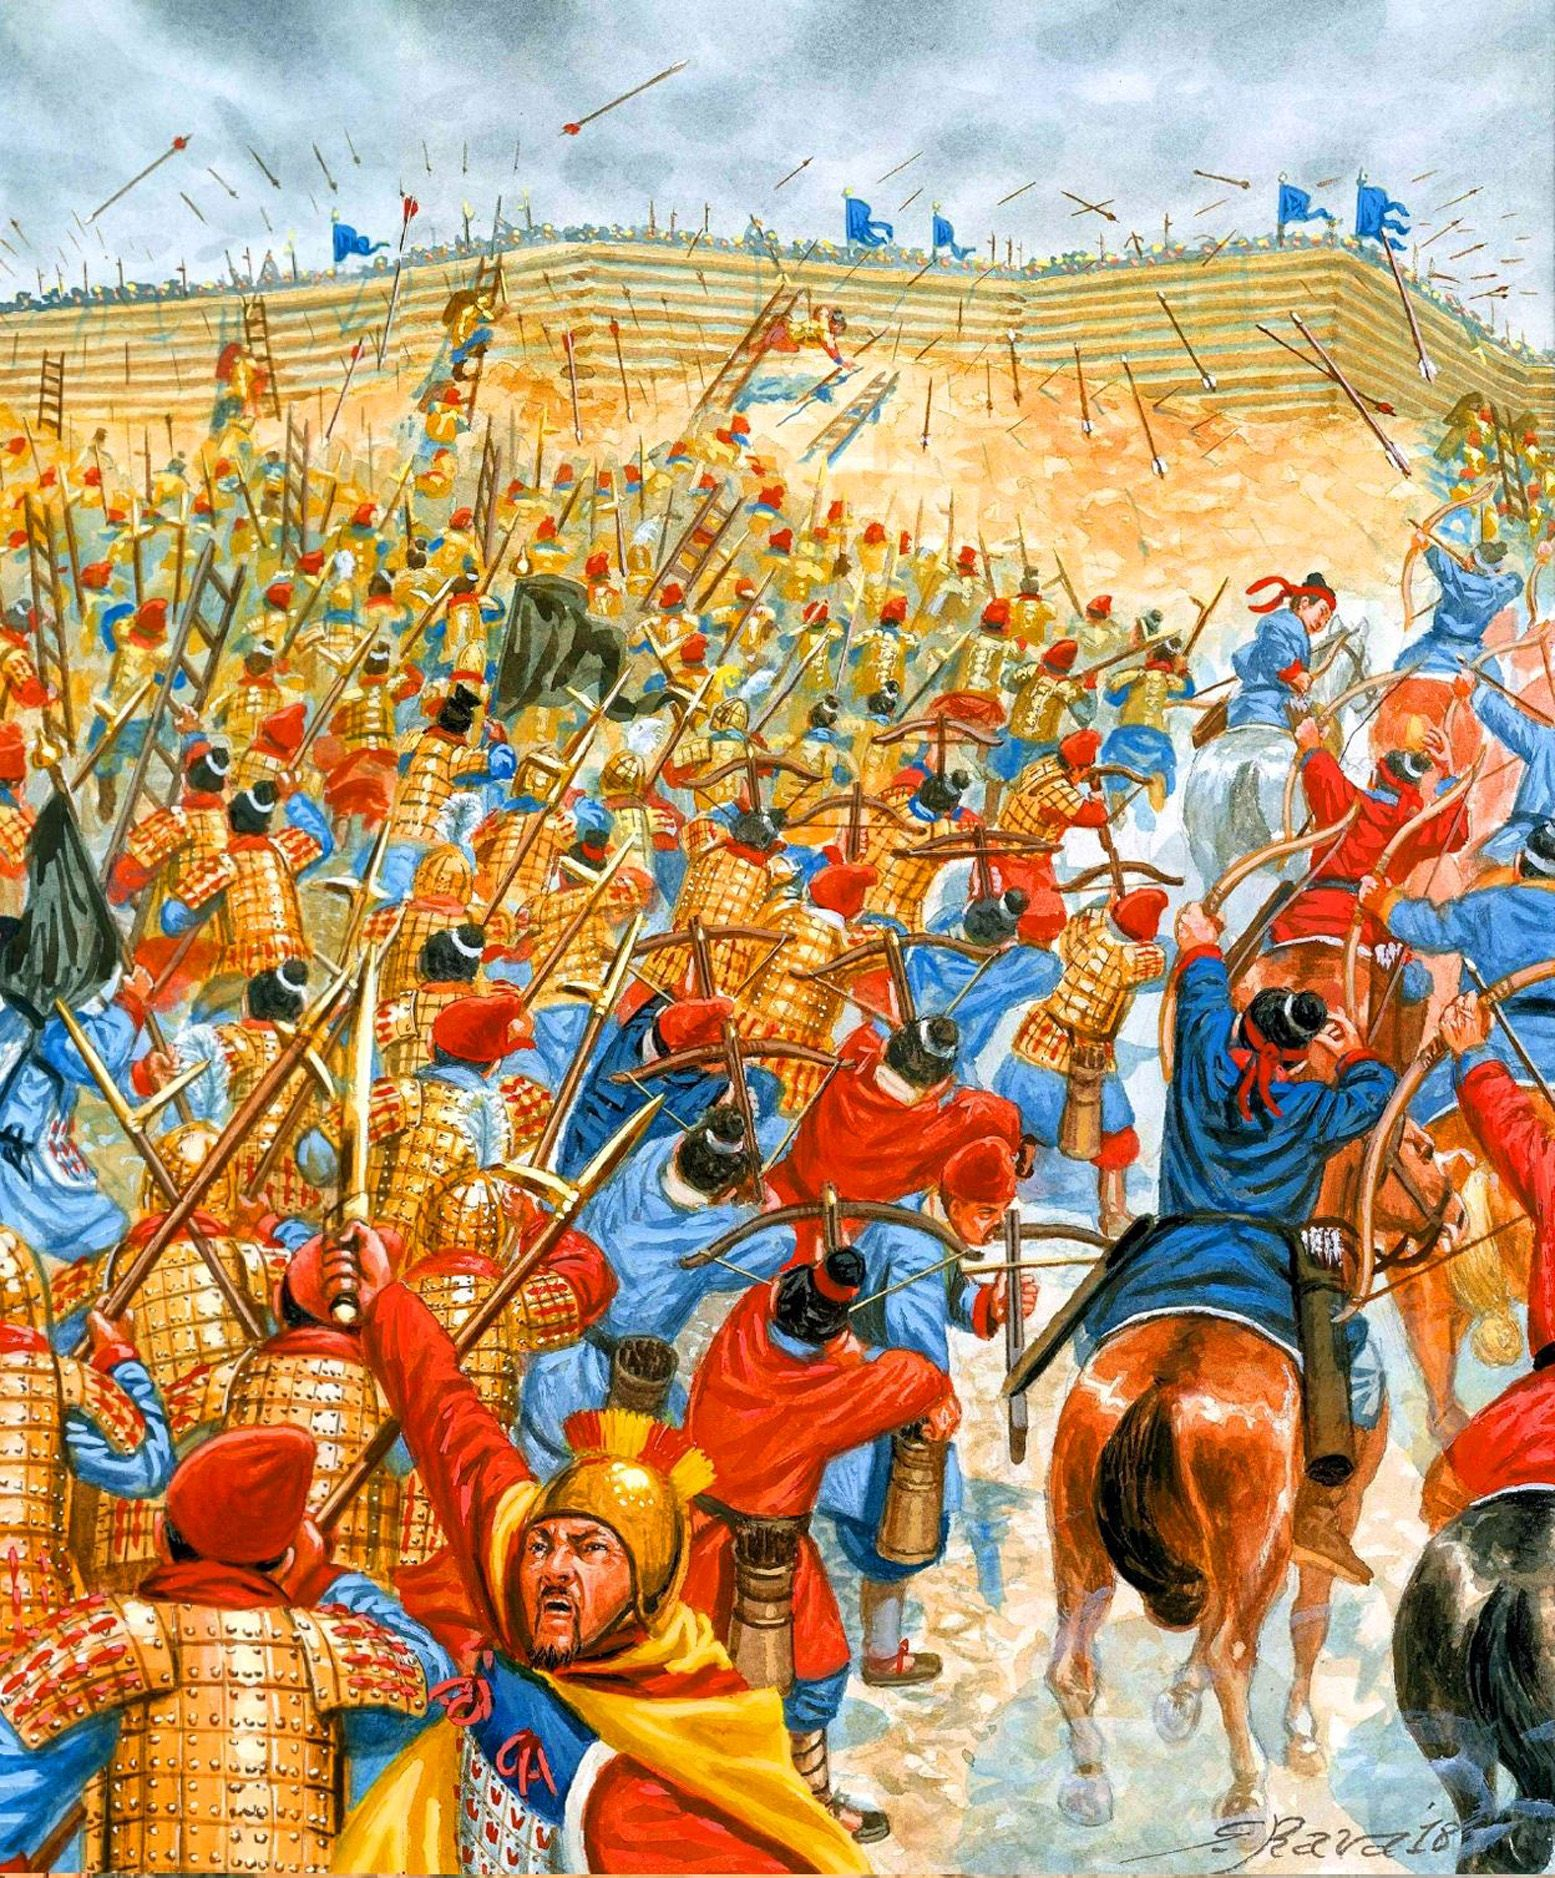 Chinese Soldiers Of The Kingdom Of Qin Attacking A Rival State Warring States Period Ancient China By Giuseppe R War Art Ancient Warfare Historical Drawings